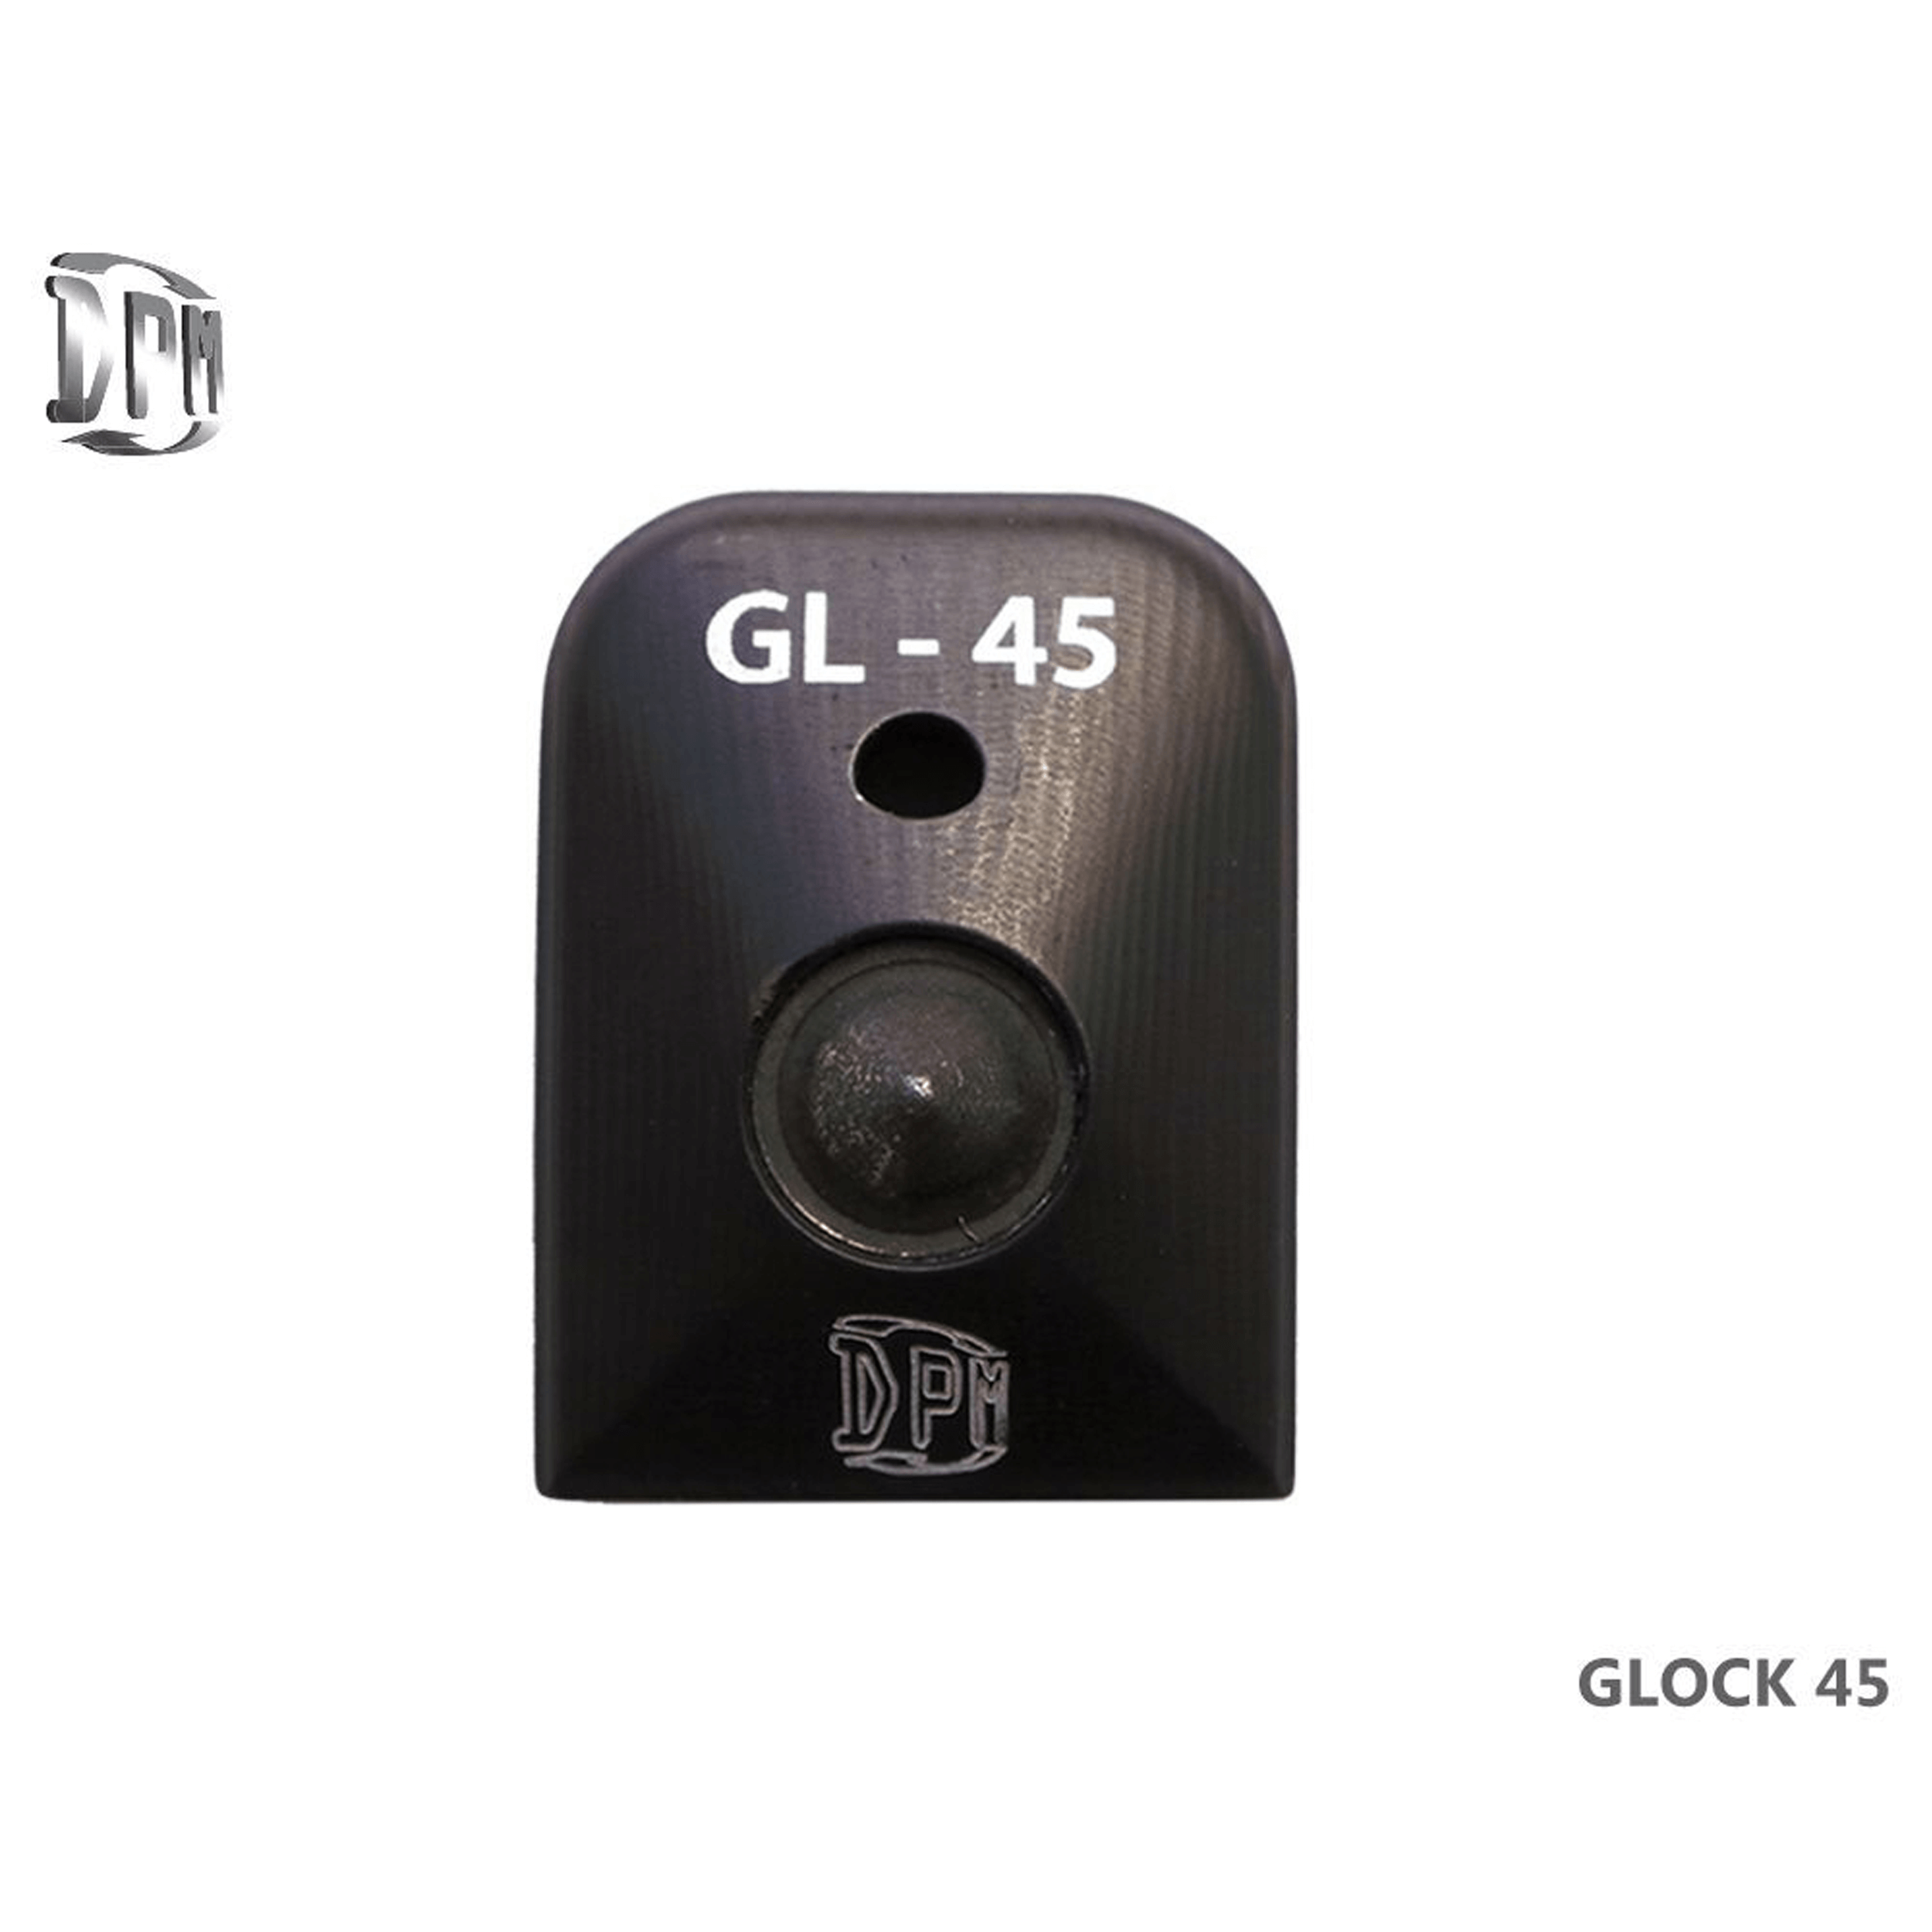 Glock 21 / 30 / 37 / 38 / 39 Aluminium Floorplate - Glass Breaker